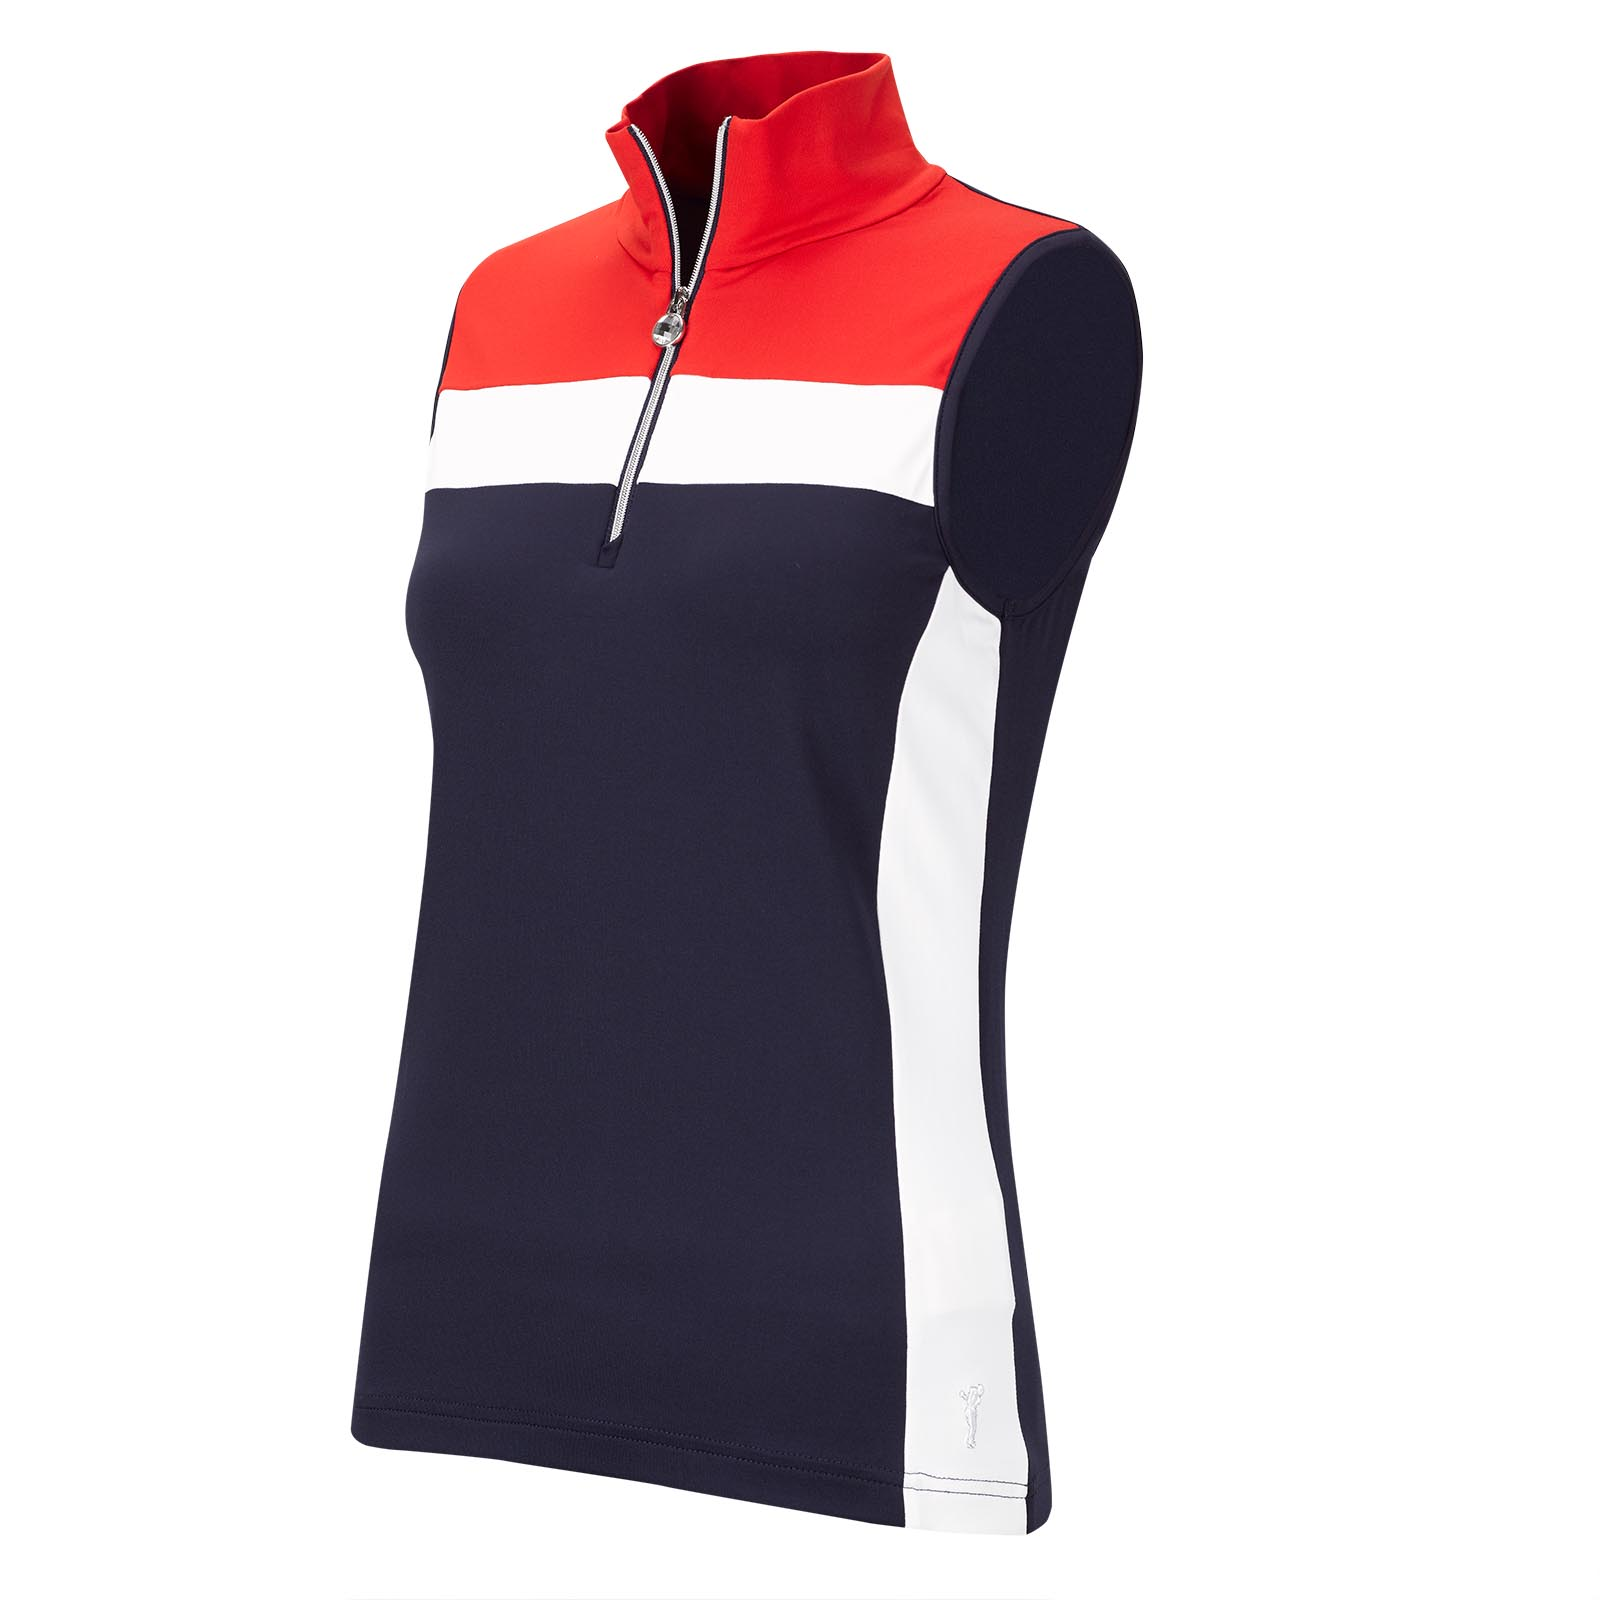 Ärmelloser Damen Lycra® Performance Funktions-Golftroyer im Pro-Look